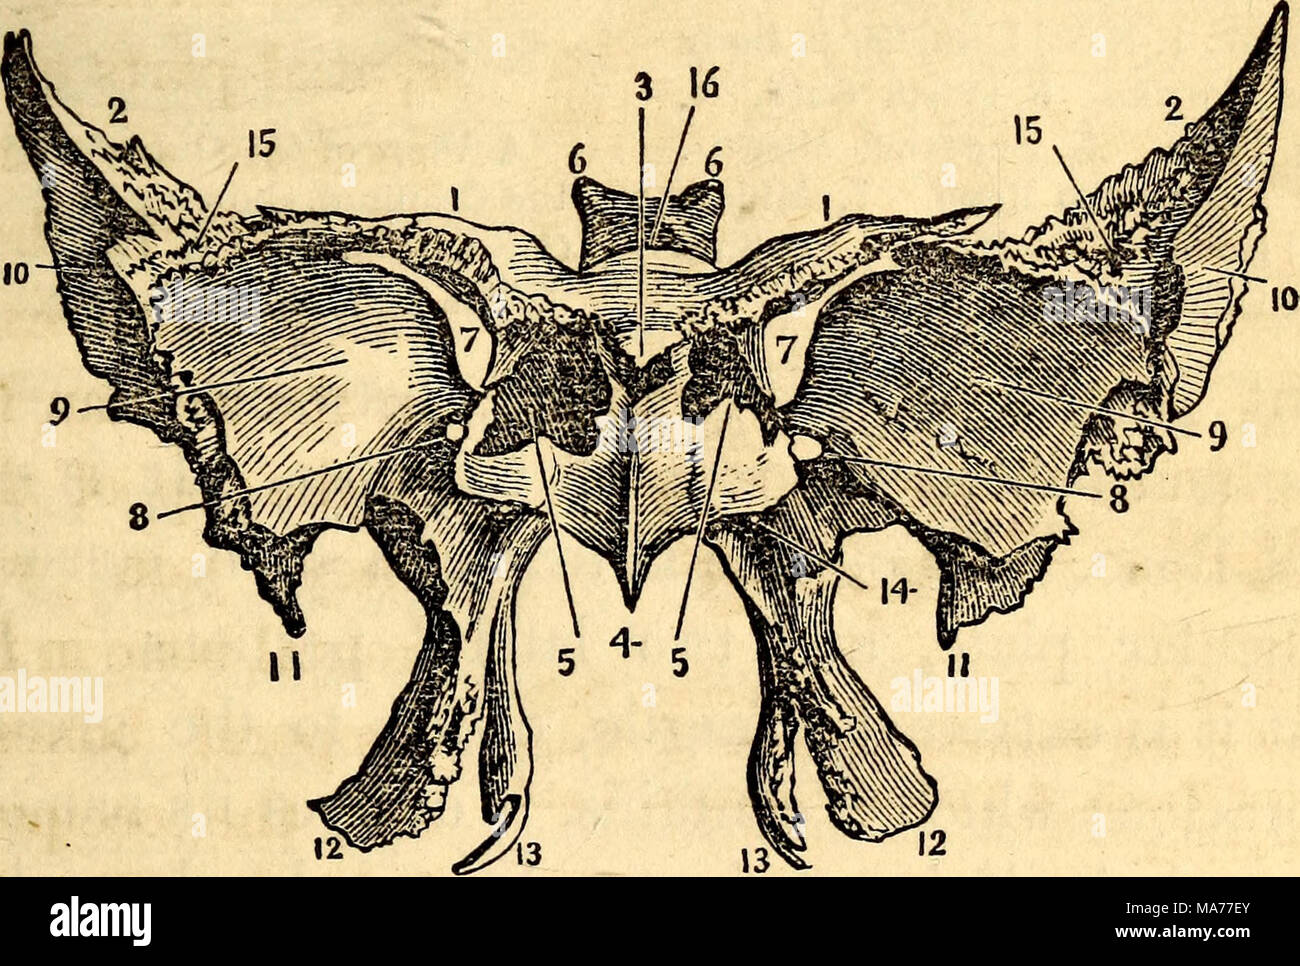 . Elementary anatomy and physiology : for colleges, academies, and other schools . The Anterior and Inferior Surface of the Sphenoid Bone. 1,1, Apophyses of Ingras- sias. 2, 2, The great Wings. 3, Ethmoidal Spine. 4, Azygos Process. 5, Sphenoidal Cells, after the removal of the Pyramids of Wistar. 6, Posterior Clinoid Processes. 7, Sphenoidal Fissure. 8, Foramen Rotundum. 9, Depression for the Middle Lobes of the Cerebrum. 10, Surface for the Temporal Muscle. 11, Styloid Process. 12, Exter- nal Pterygoid Process. 13, Internal Pterygoid Process. 14, Pterygoid Foramen. 15, Ar- ticular Face for t - Stock Image